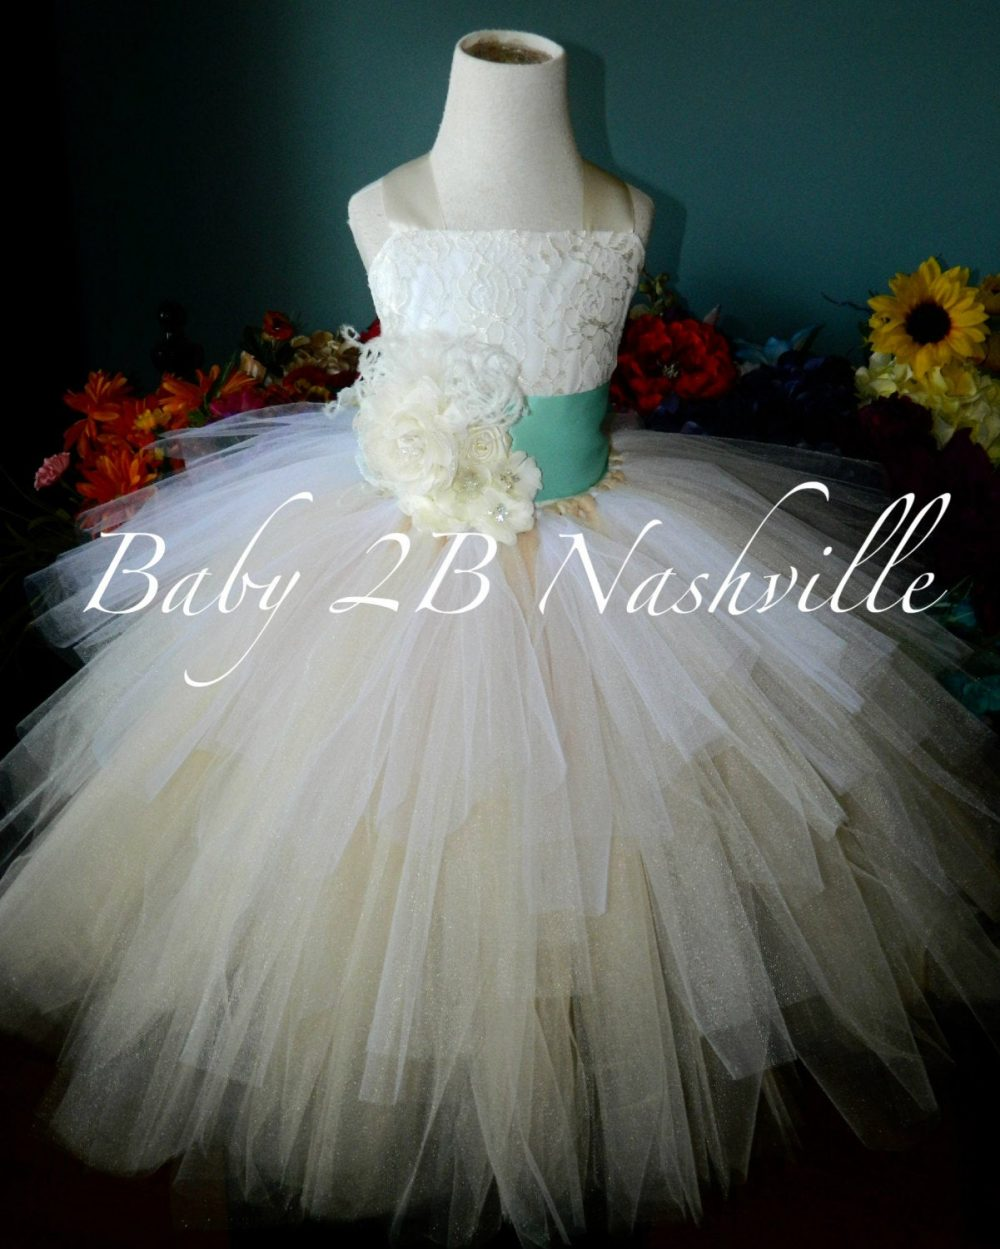 Wedding Flower Girl Dress, Champagne Tulle Dress With Ivory Lace, Dress, Cream Tutu Aqua Sash & Flower Clip Included